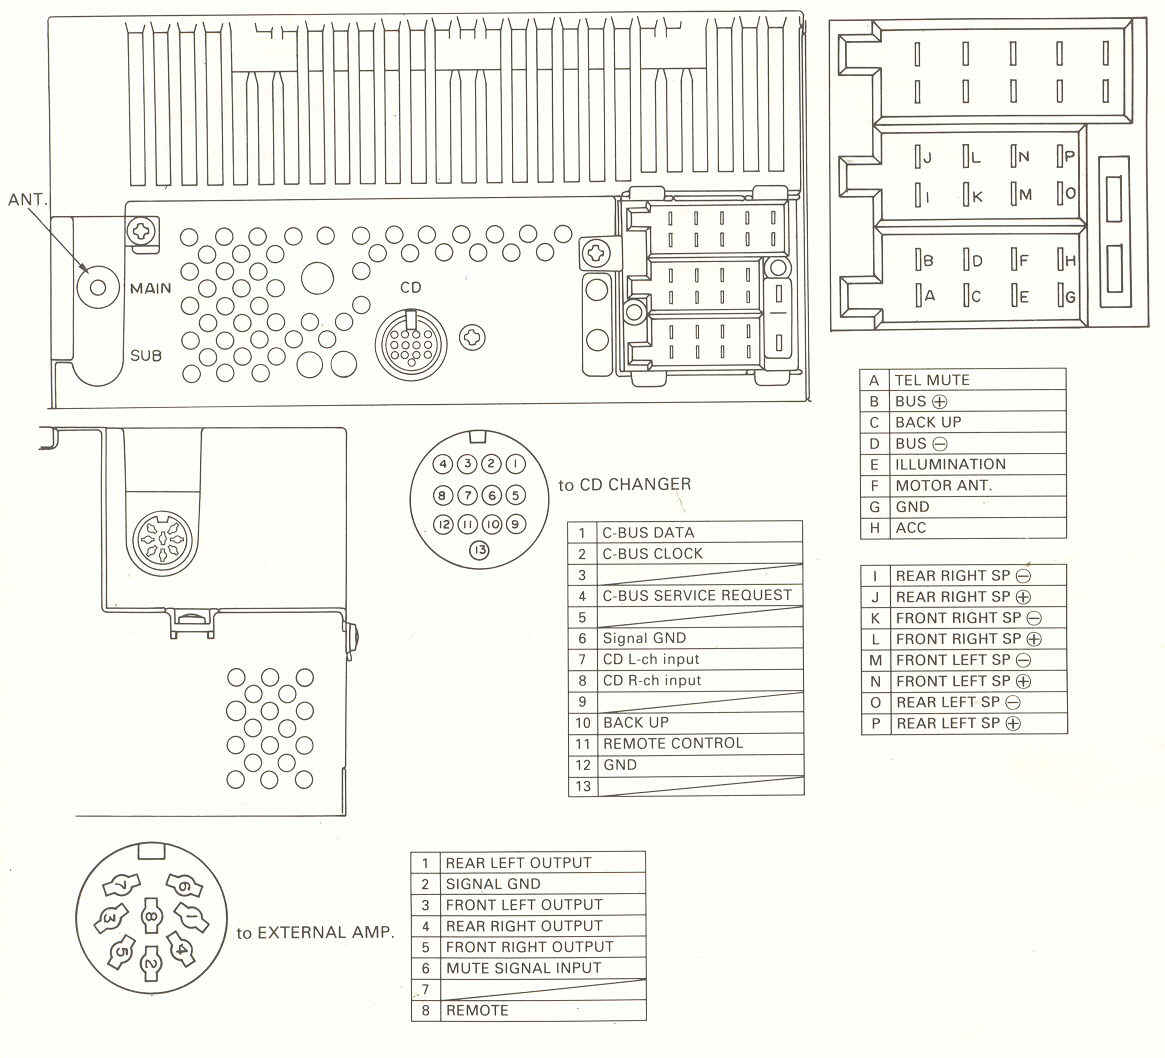 Saab 9 3 Radio Wiring Diagram Another Blog About Wiring Diagram \u2022 2005 Saab  9 5 Fuse Diagram 2003 Saab 9 3 Stereo Wiring Diagram